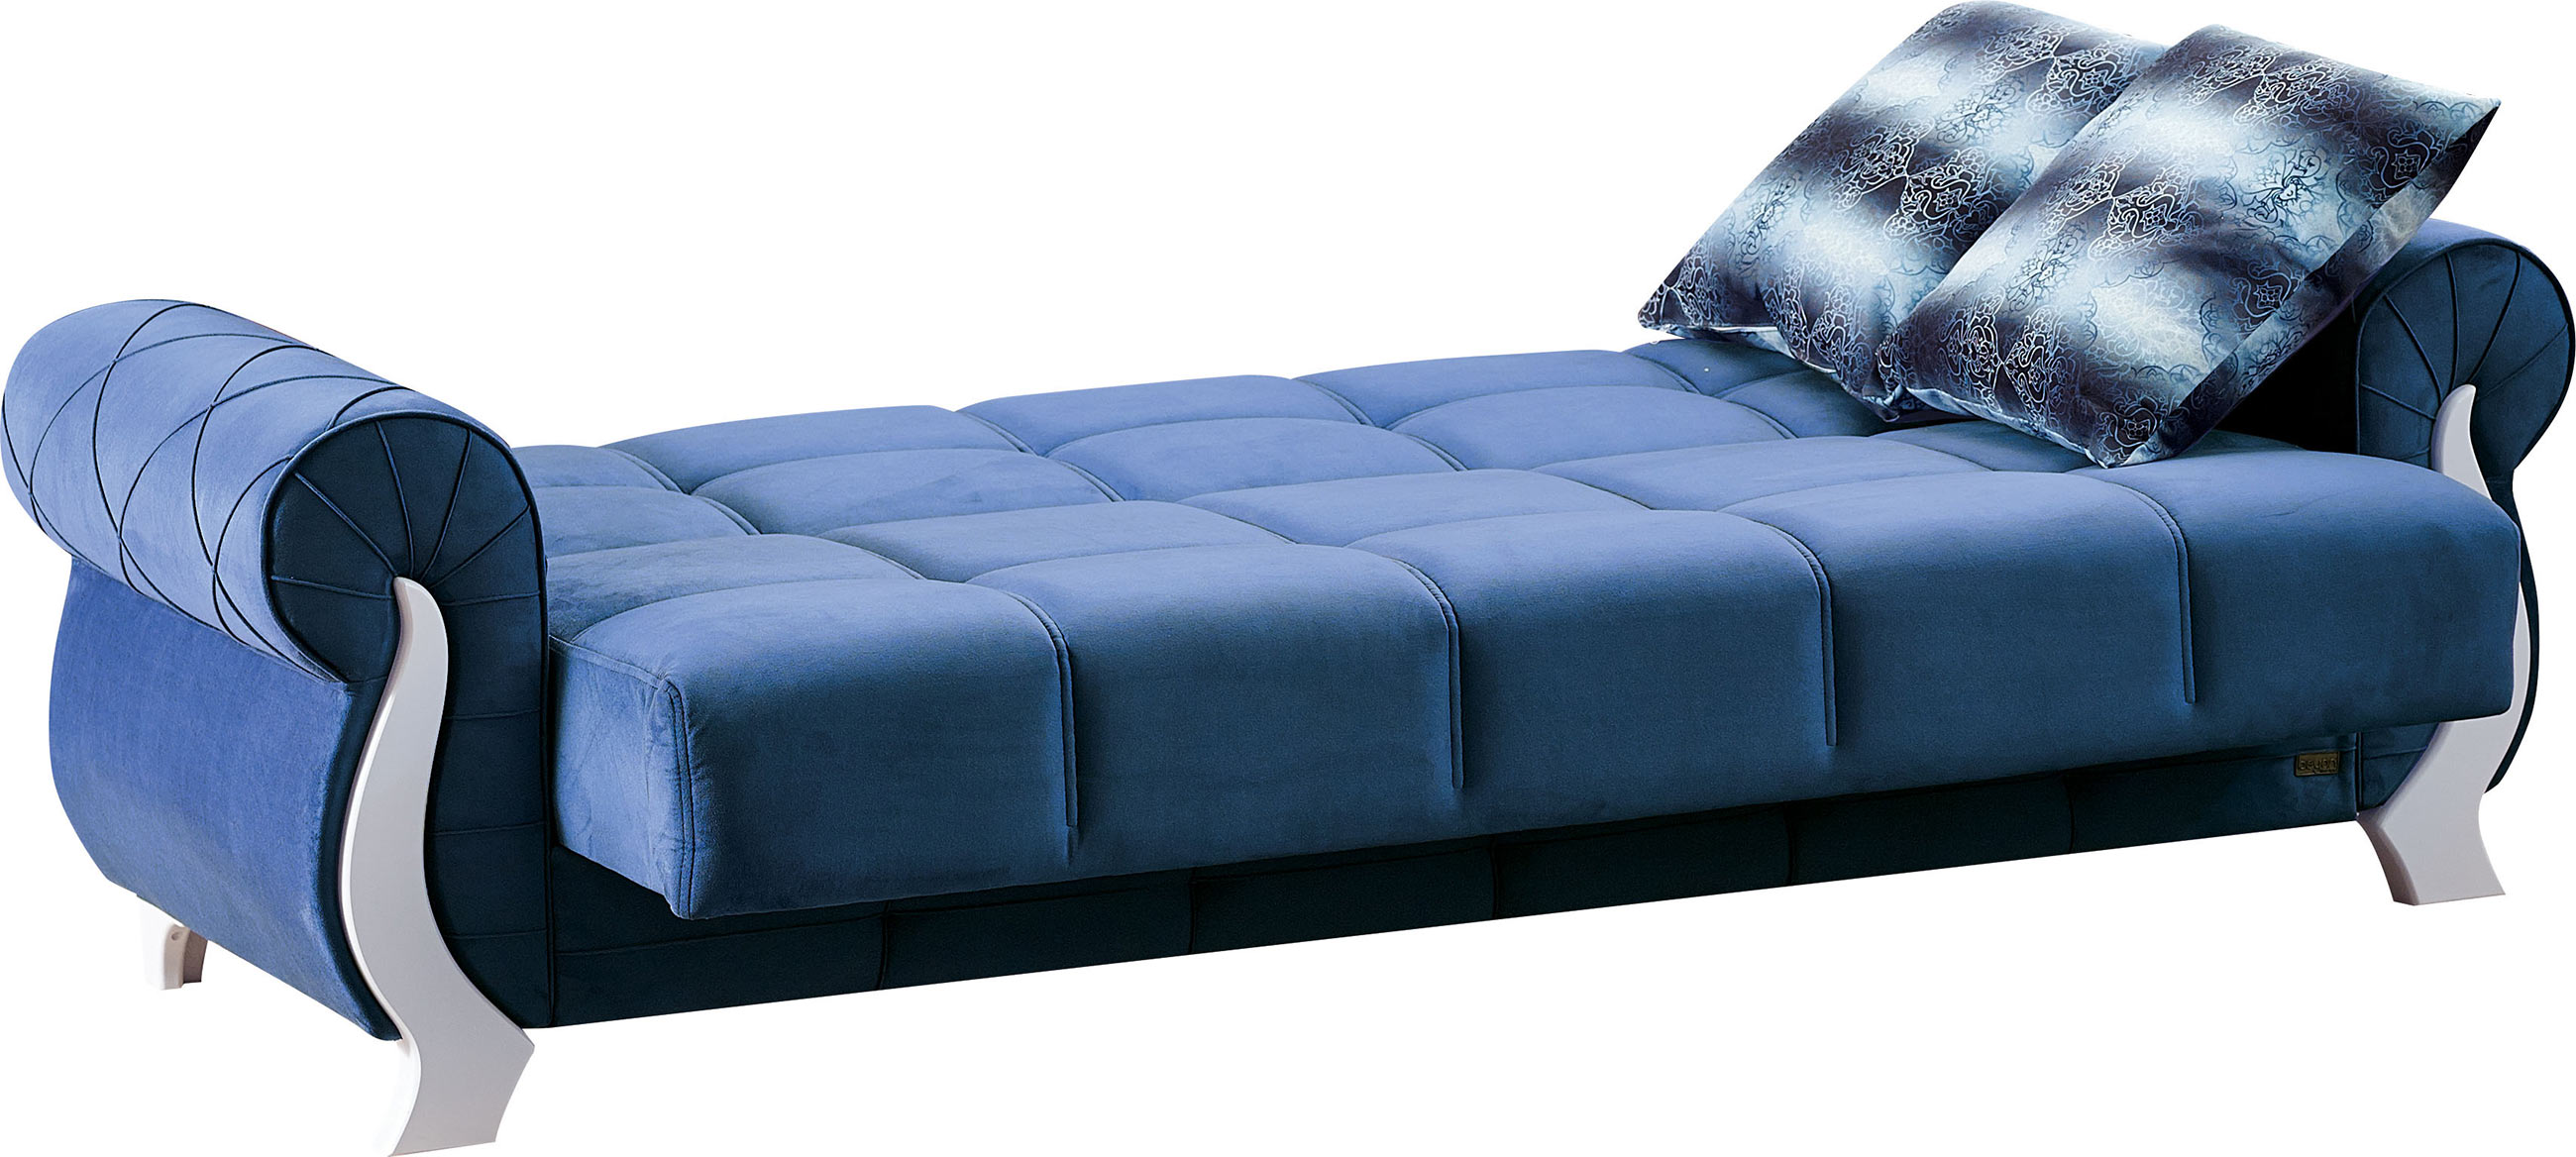 Admirable Montreal Blue Fabric Sofa Bed By Empire Furniture Usa Ibusinesslaw Wood Chair Design Ideas Ibusinesslaworg